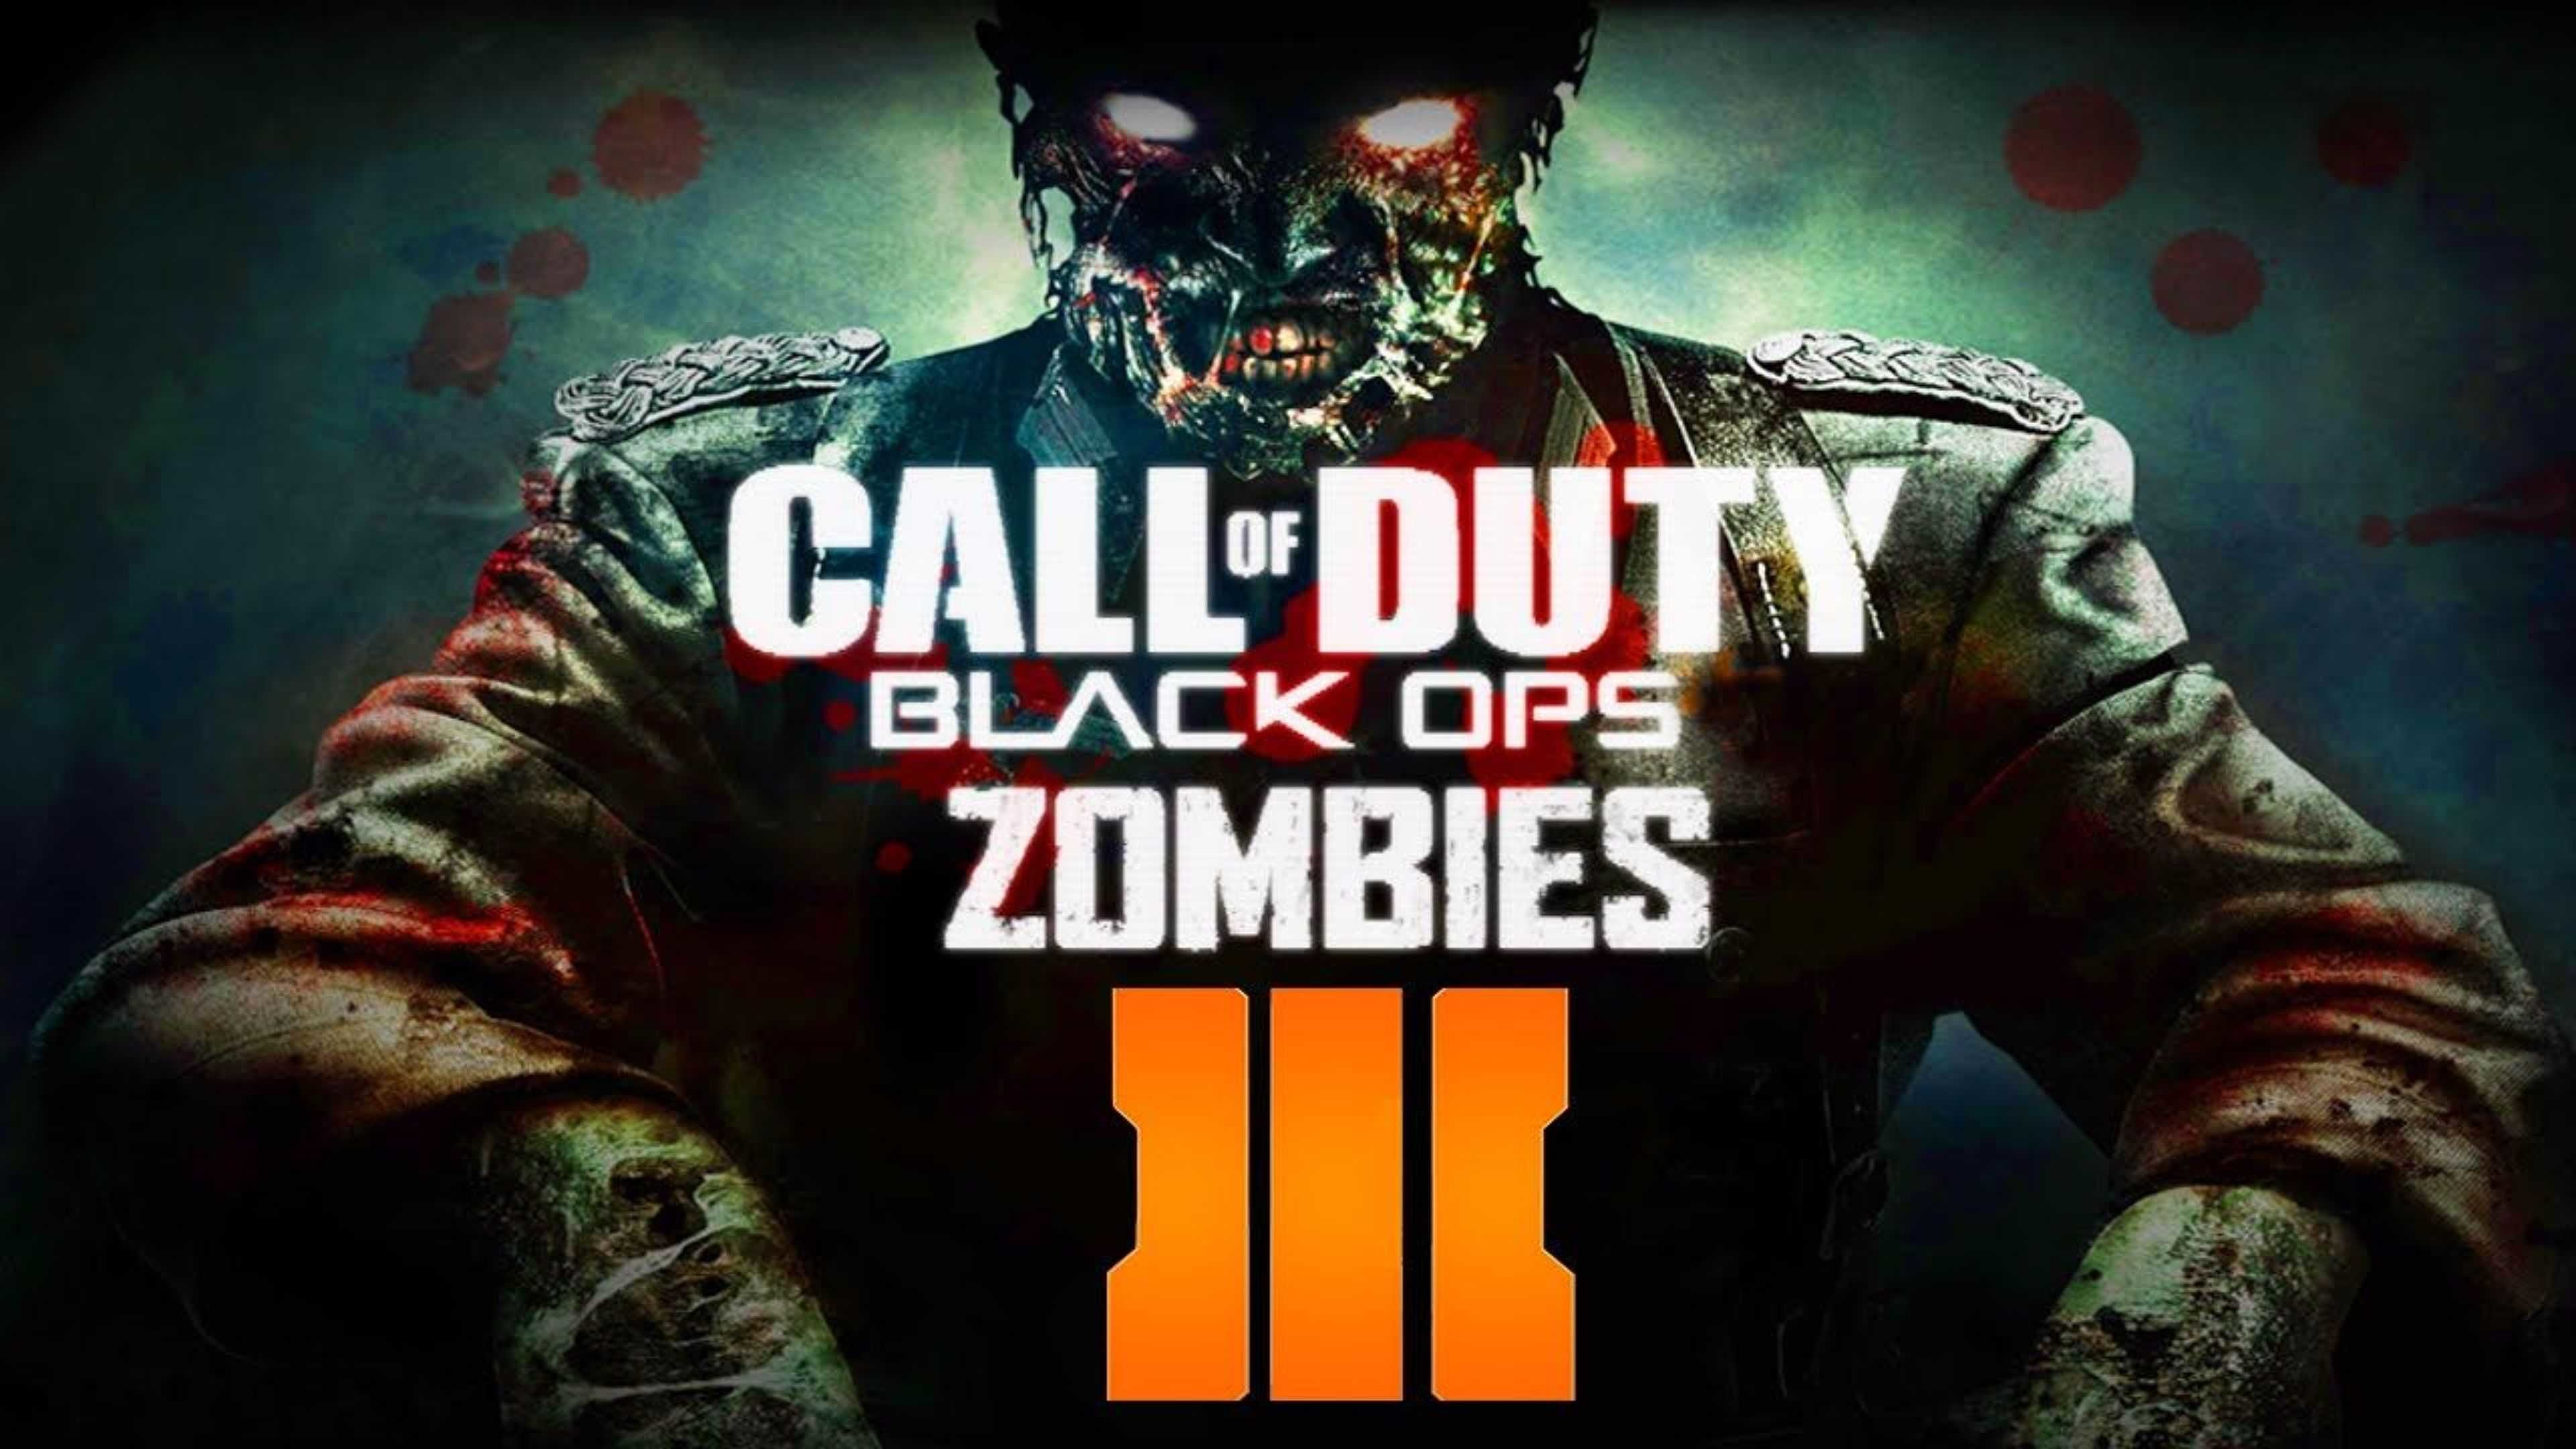 Cod Black Ops 2 Wallpaper Posted By Samantha Johnson